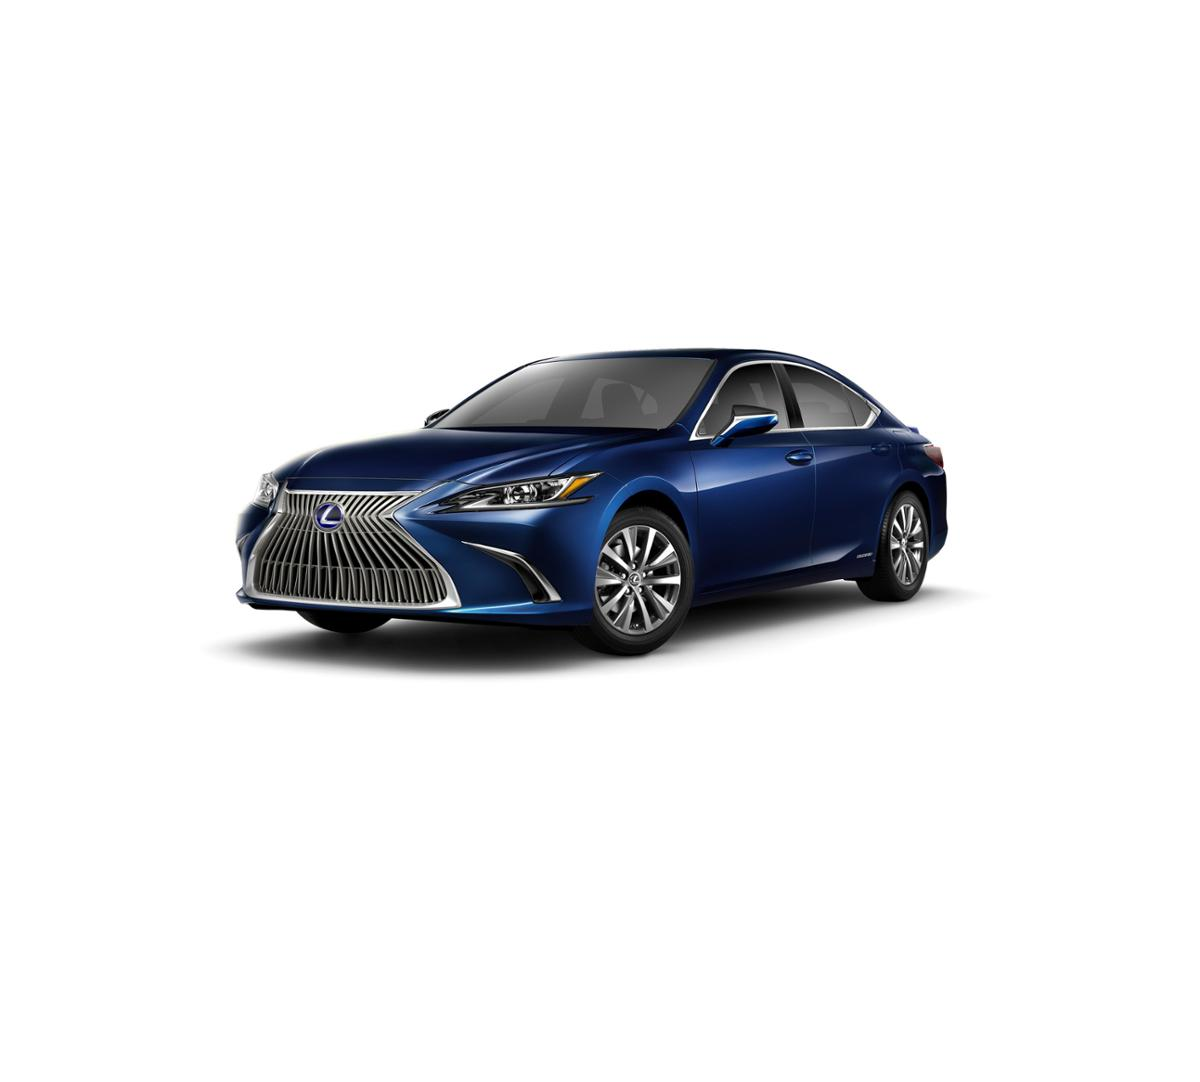 2019 Lexus ES 300h Vehicle Photo in Merriam, KS 66203